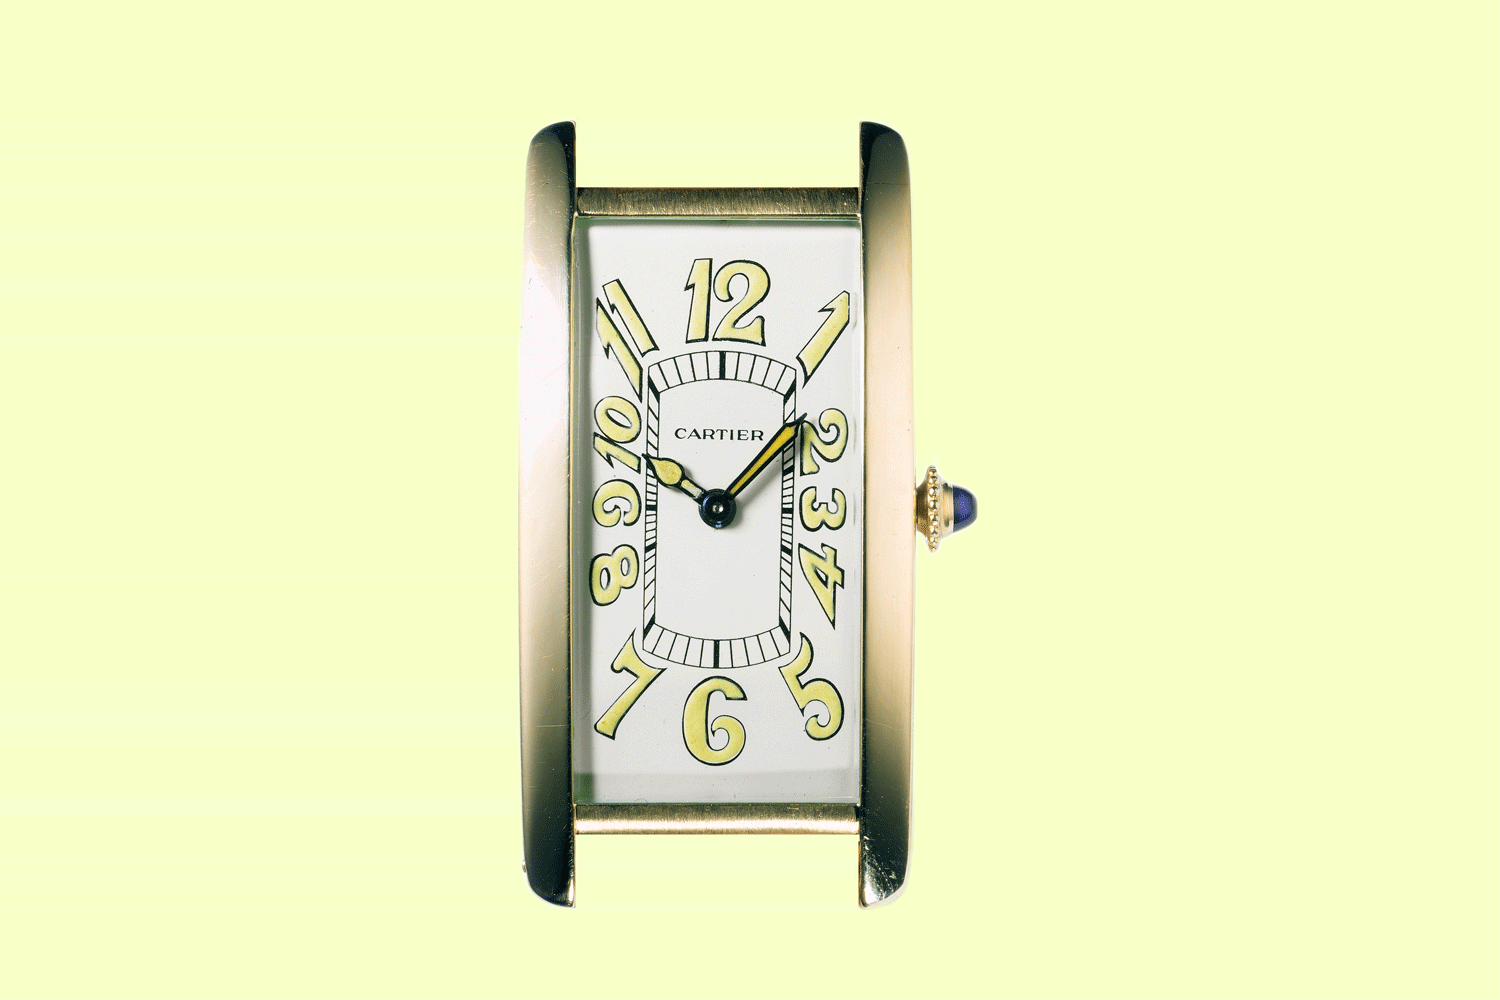 The Tank Cintrée by Cartier London, dated to 1929 and gifted by Fred Astaire to his friend and racehorse trainer Felix Leach Jr, which had a dial with a combination of Arabic Numerals and chemin de fer minute track; this watch is presently part of the Cartier Collection (©Revolution)